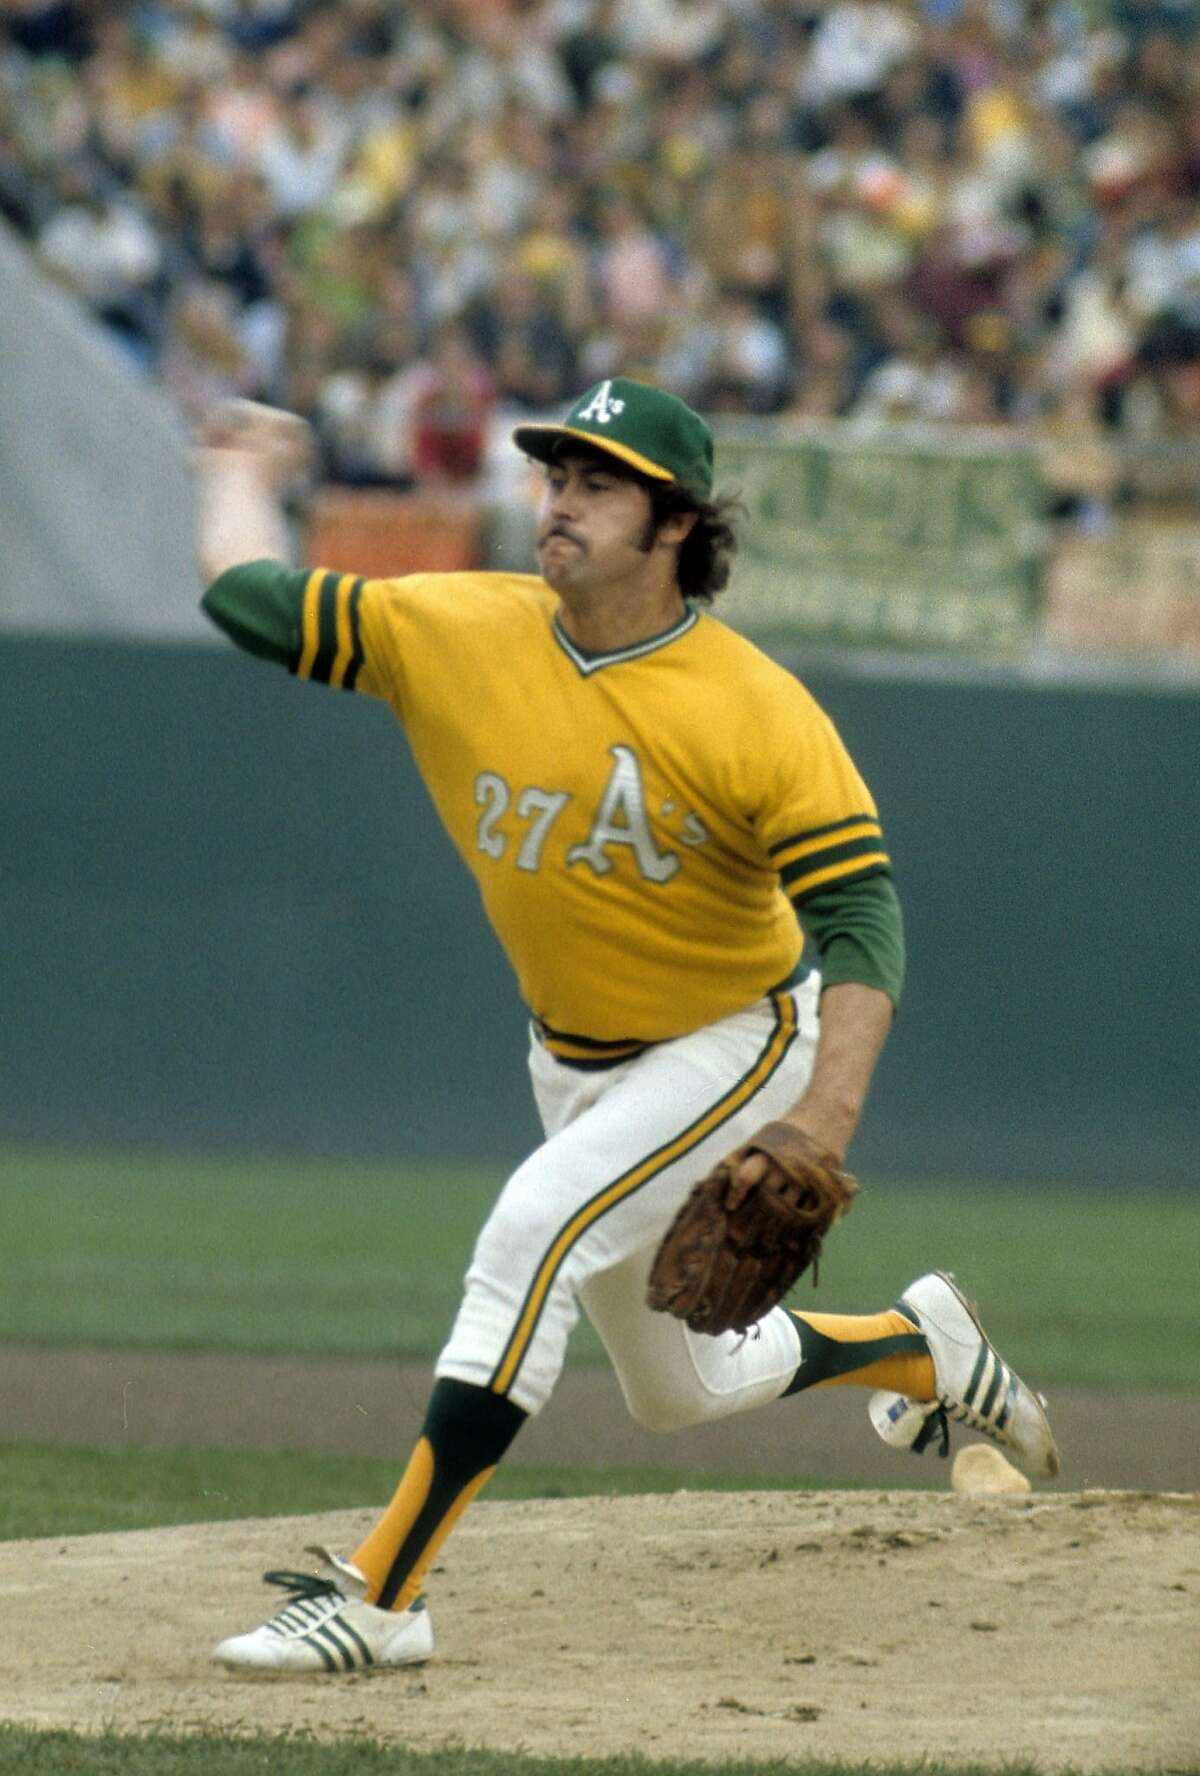 OAKLAND, CA - CIRCA 1970's: Pitcher Jim Catfish Hunter #27 of the Oakland Athletics pitches during a circa early 1970's Major League baseball game at the Oakland Coliseum in Oakland, California. Hunter played for the Athletics from 1965-74. (Photo by Focus on Sport/Getty Images)